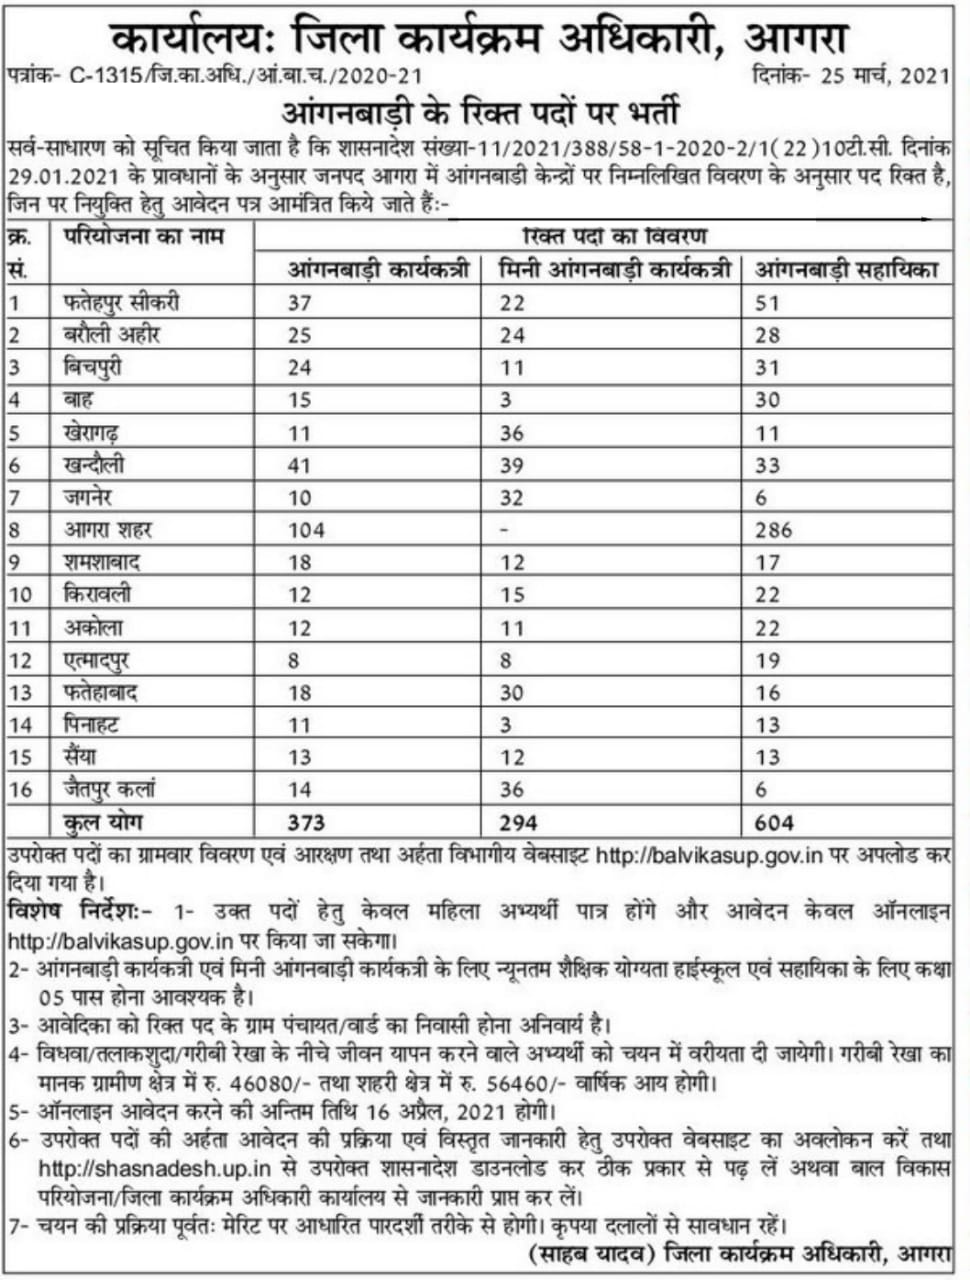 UP ICDS 2041 Anganwadi Worker/ सहायक Bharti 2021- UPICDS Anganwadi Worker, Mini Anganwadi Worker, and Assistant Recruitment 2021 5